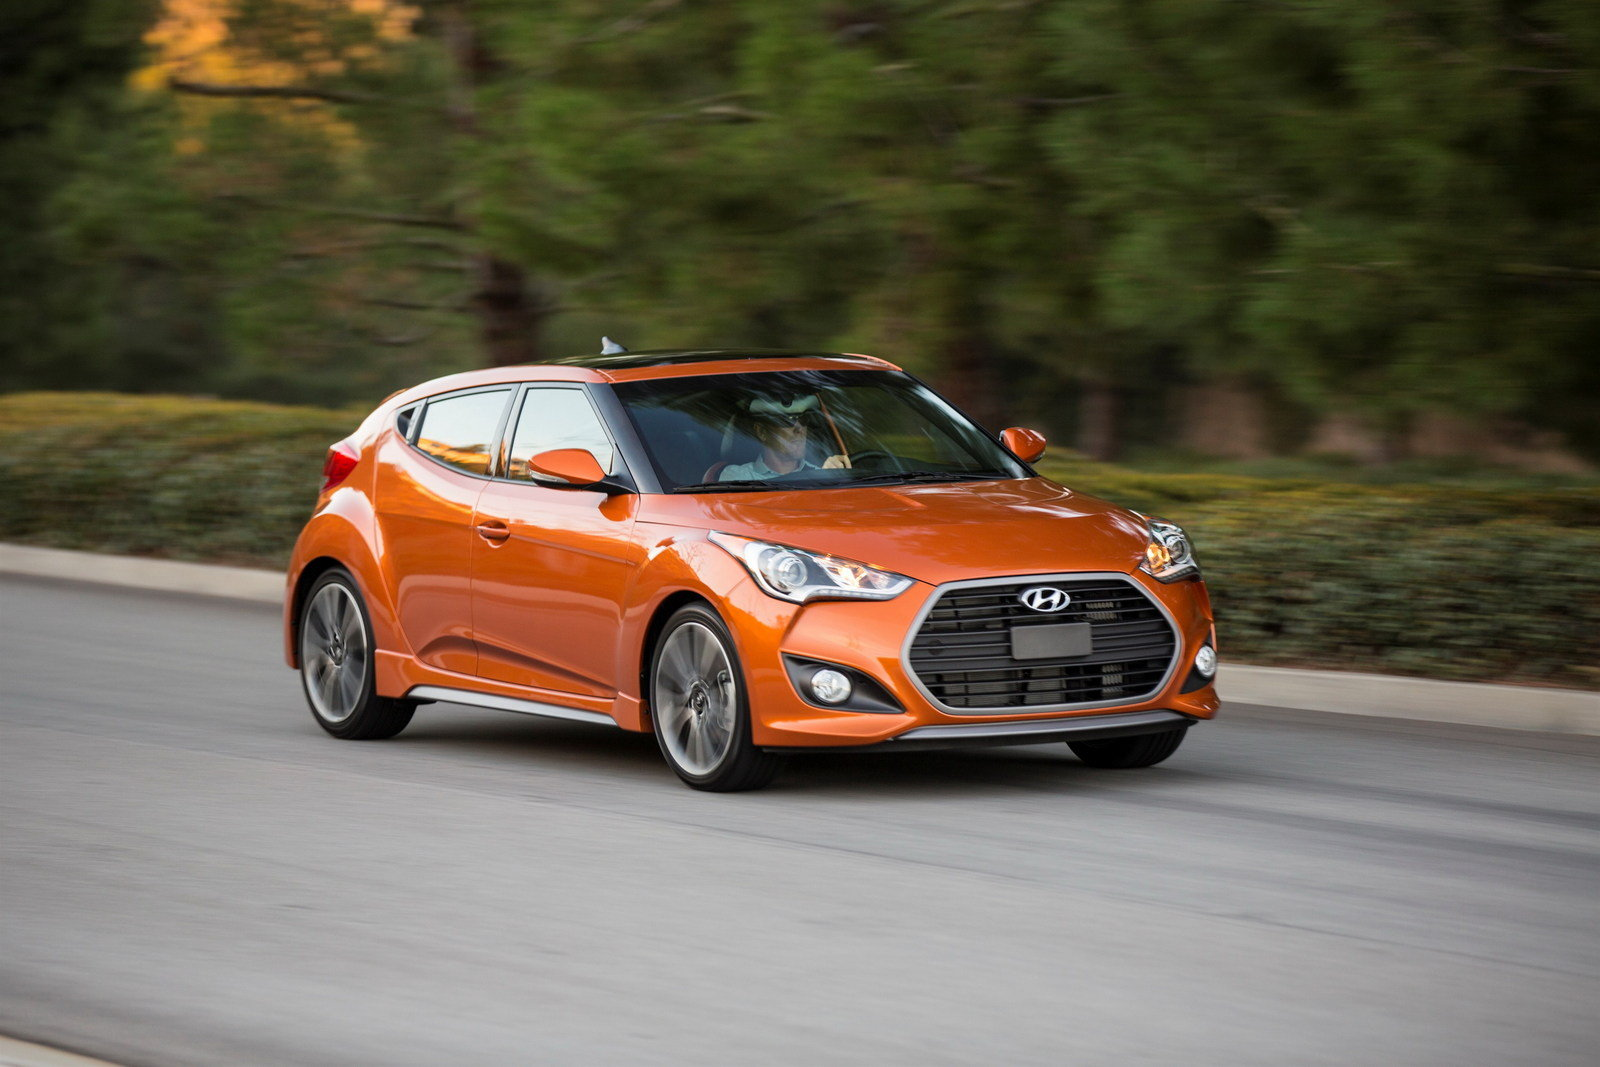 2016 hyundai veloster turbo picture 617090 car review top speed. Black Bedroom Furniture Sets. Home Design Ideas